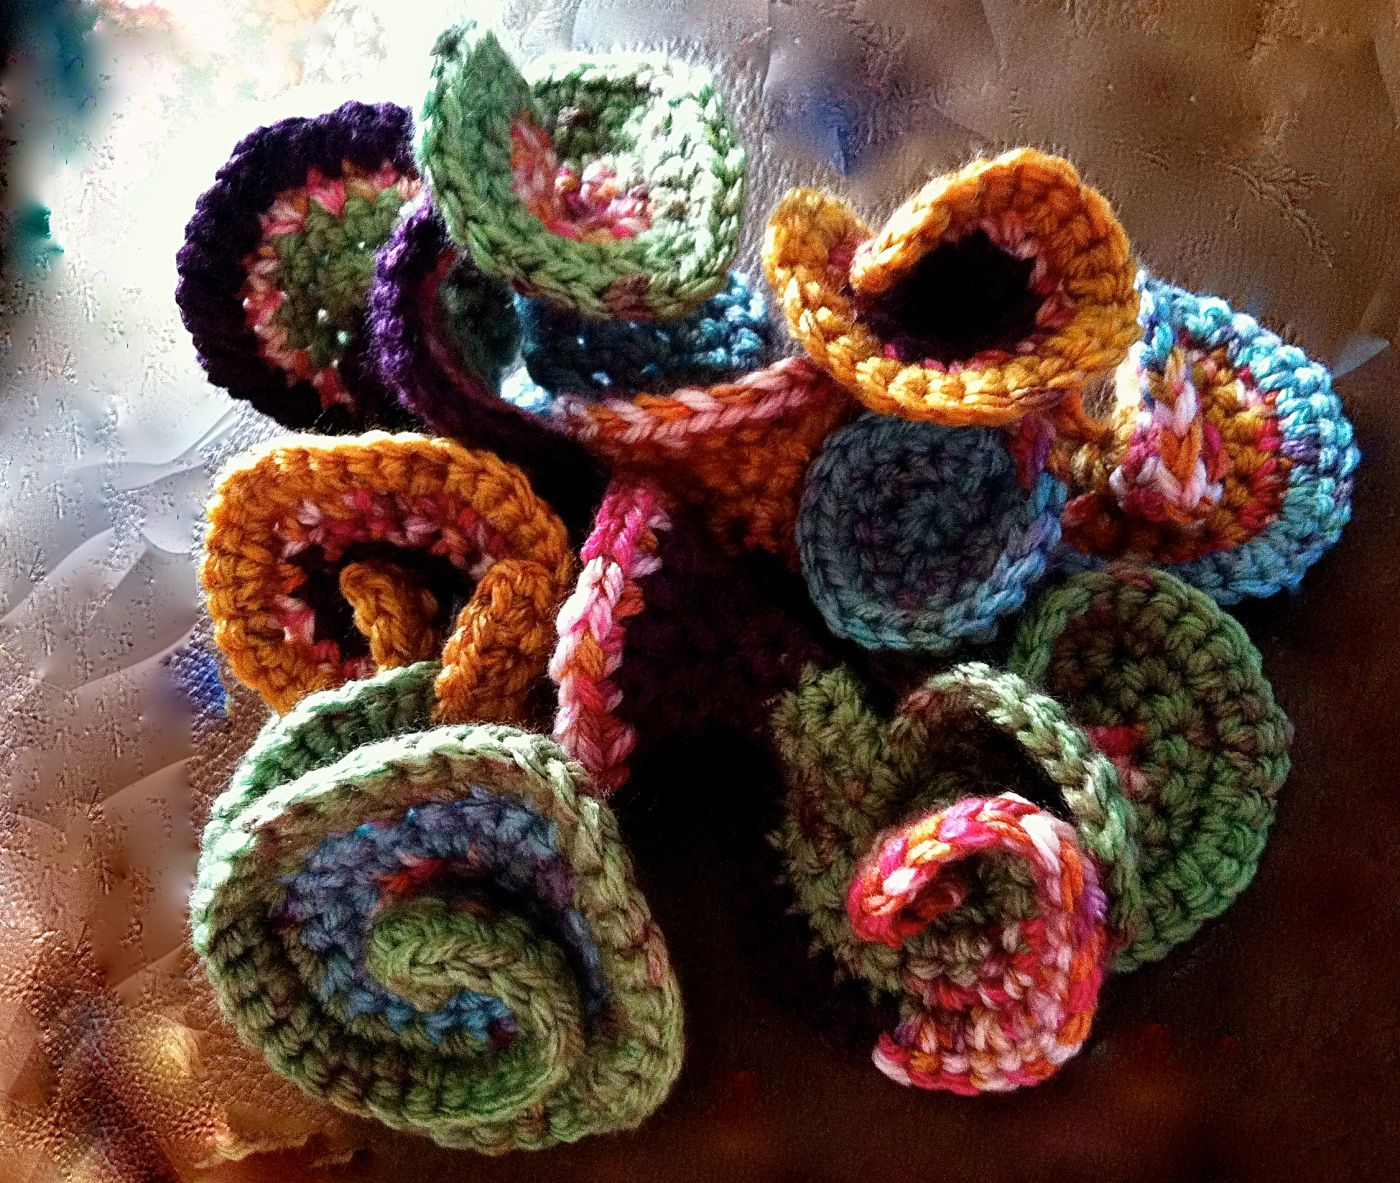 Step by Step instructions for making a freeform crochet sculpture